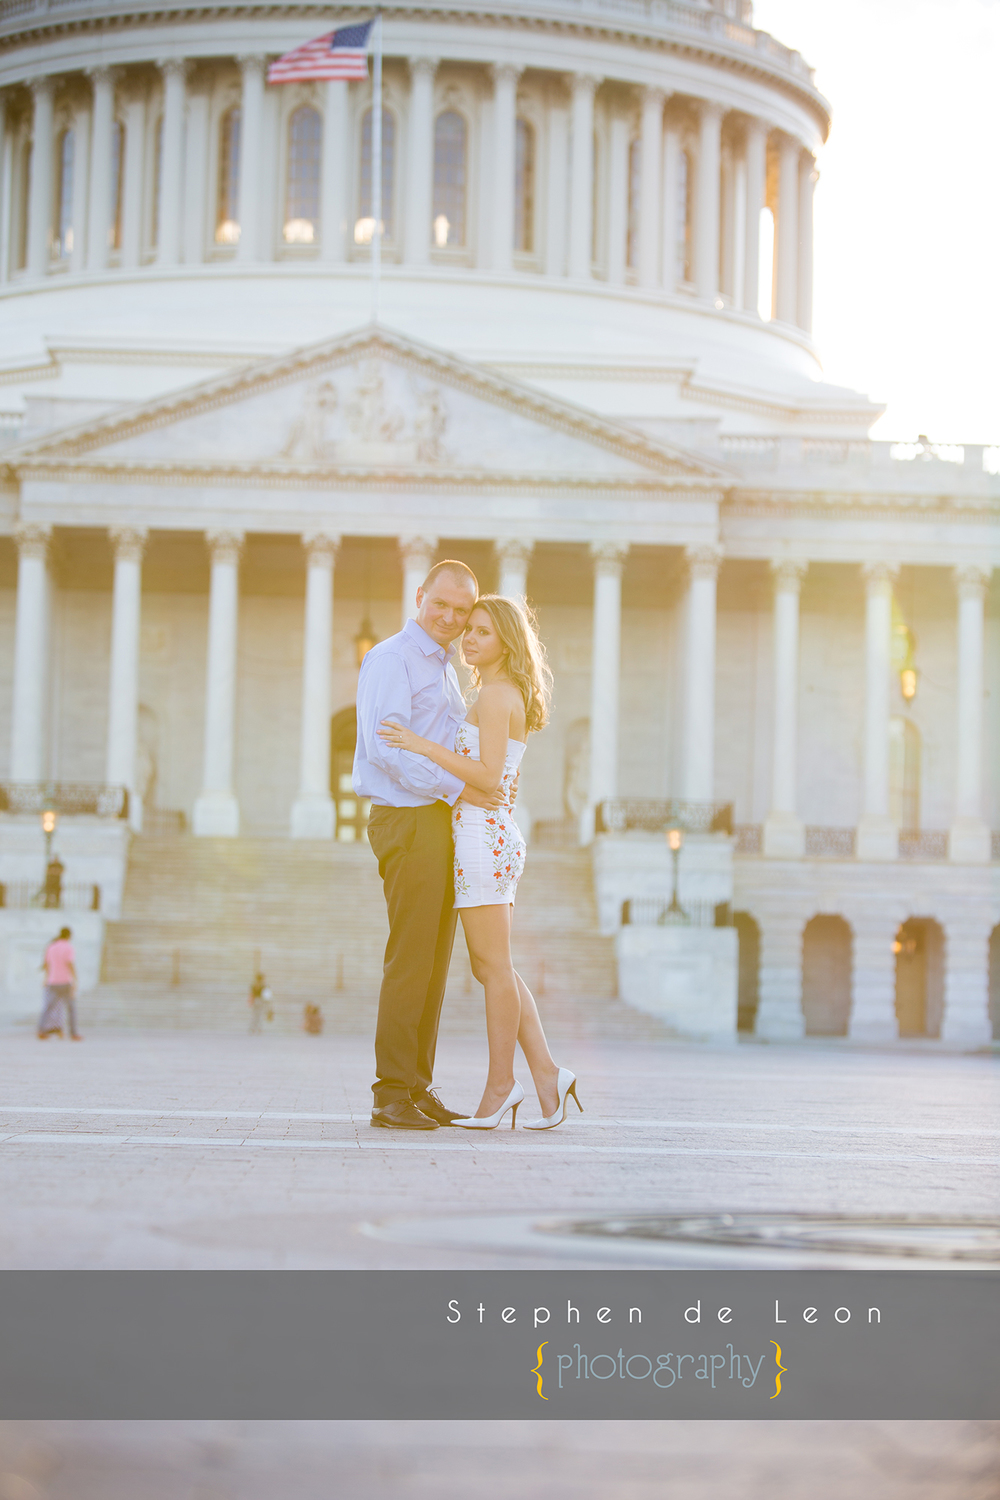 Stephen_de_Leon_Capitol_Engagement_Photography09.jpg